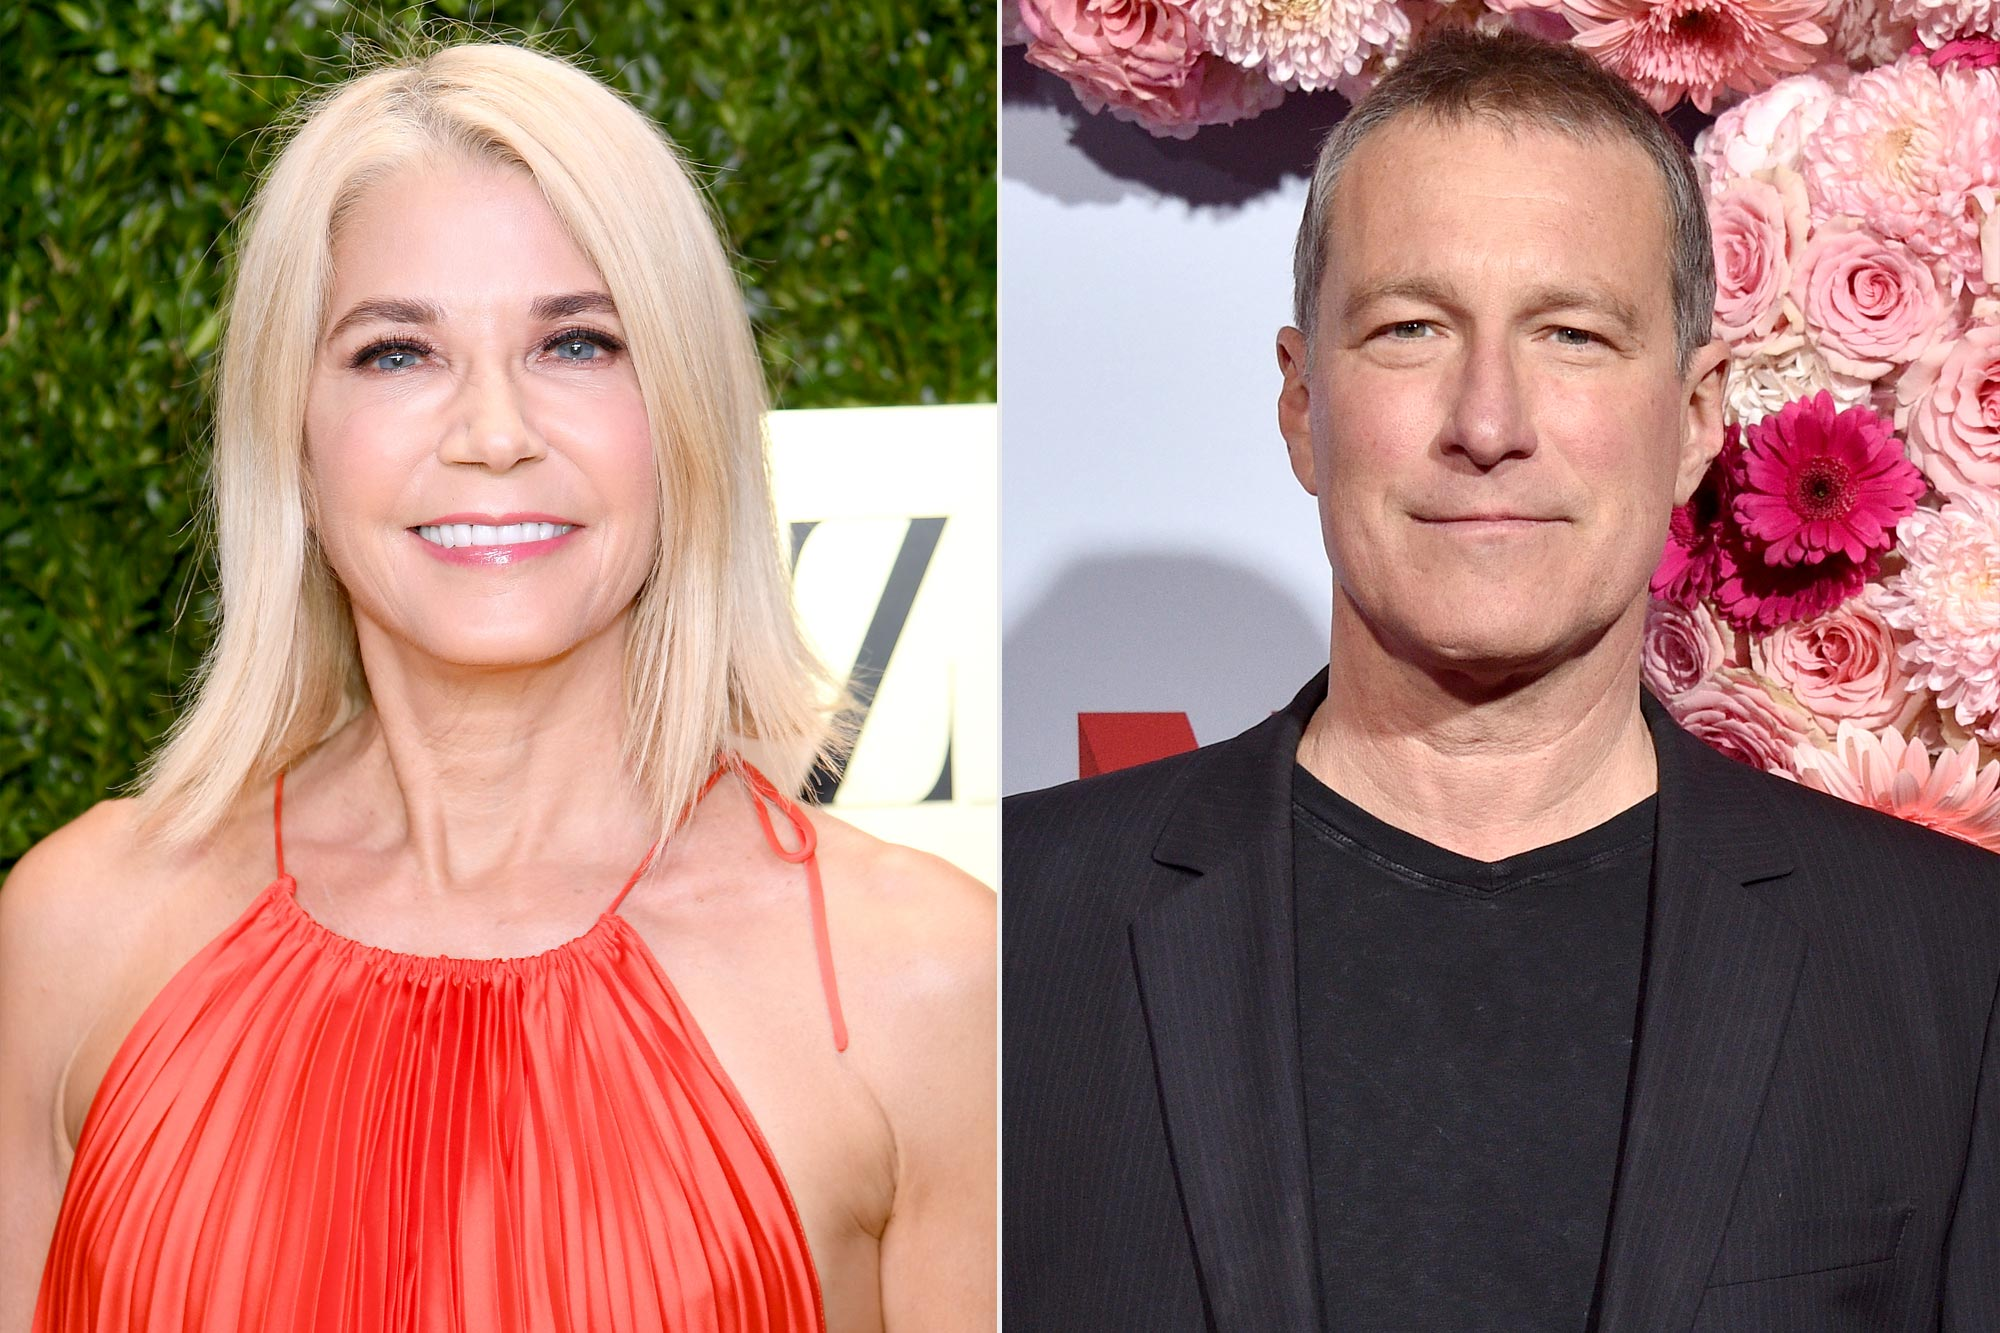 SATC' author Candace Bushnell went on date with John Corbett | EW.com